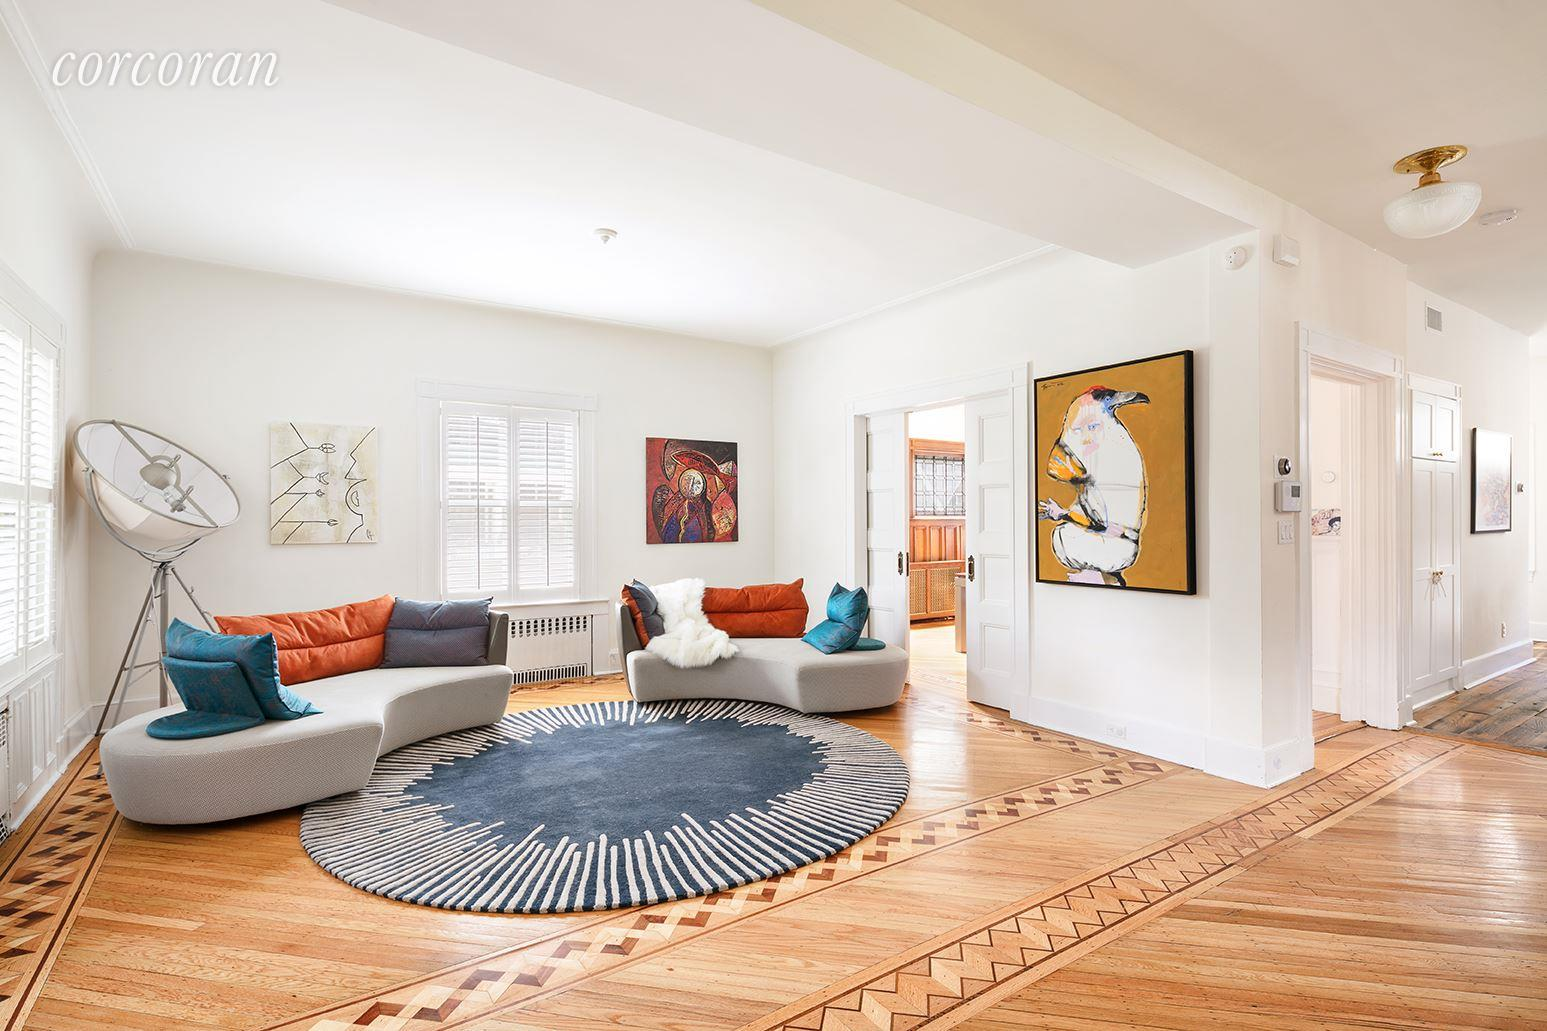 Ditmas Park five-bedroom with an in-ground pool asks $2.8M | 6sqft